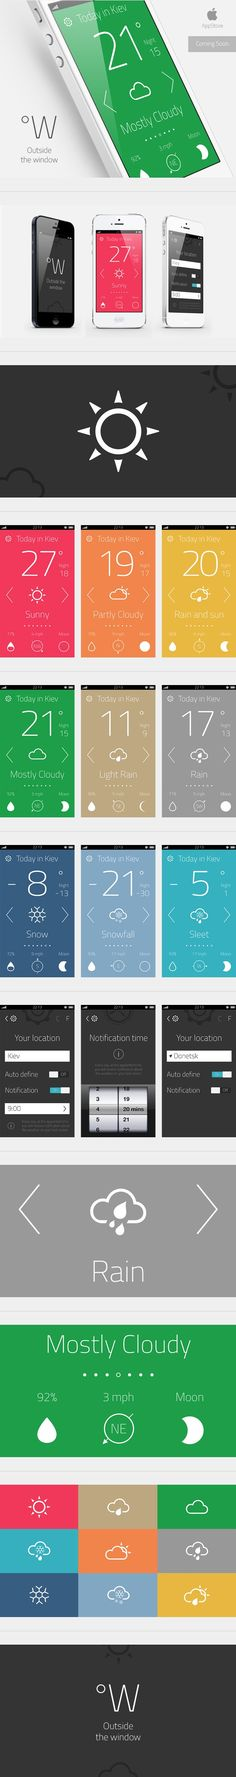 Creative #mobile #apps